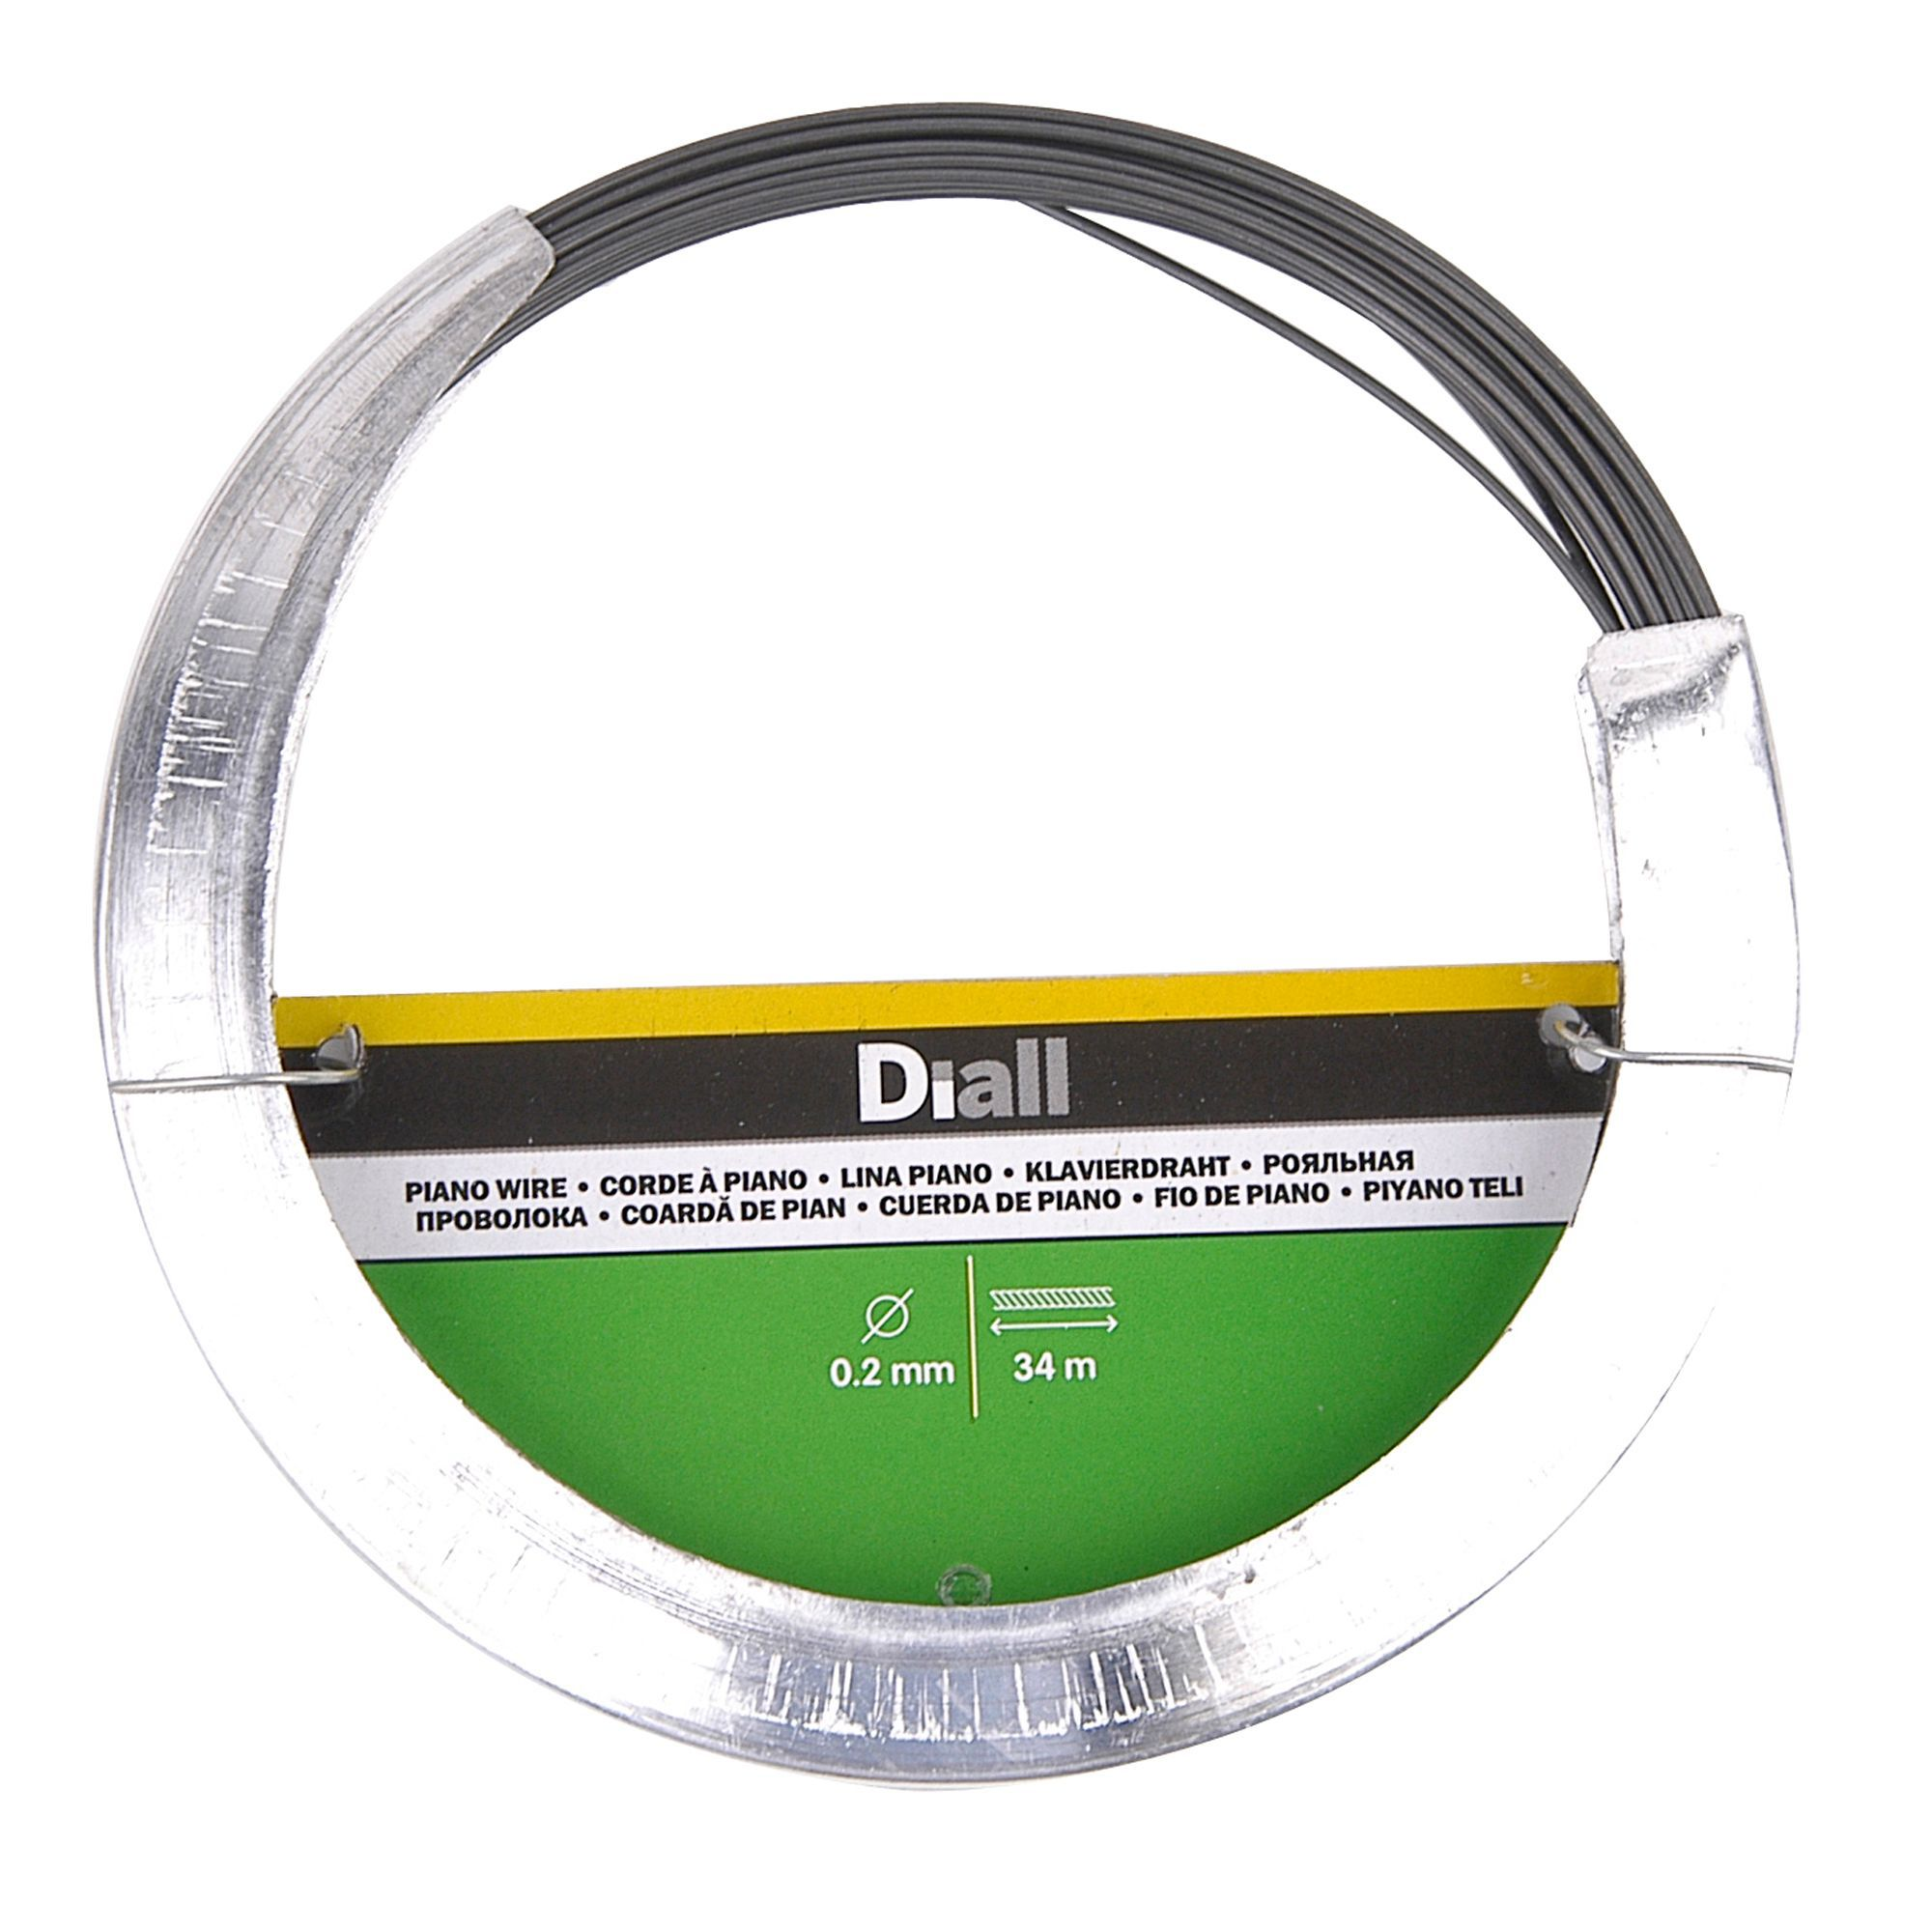 Diall Steel Piano Wire 0.2mm x 34M | Departments | DIY at B&Q